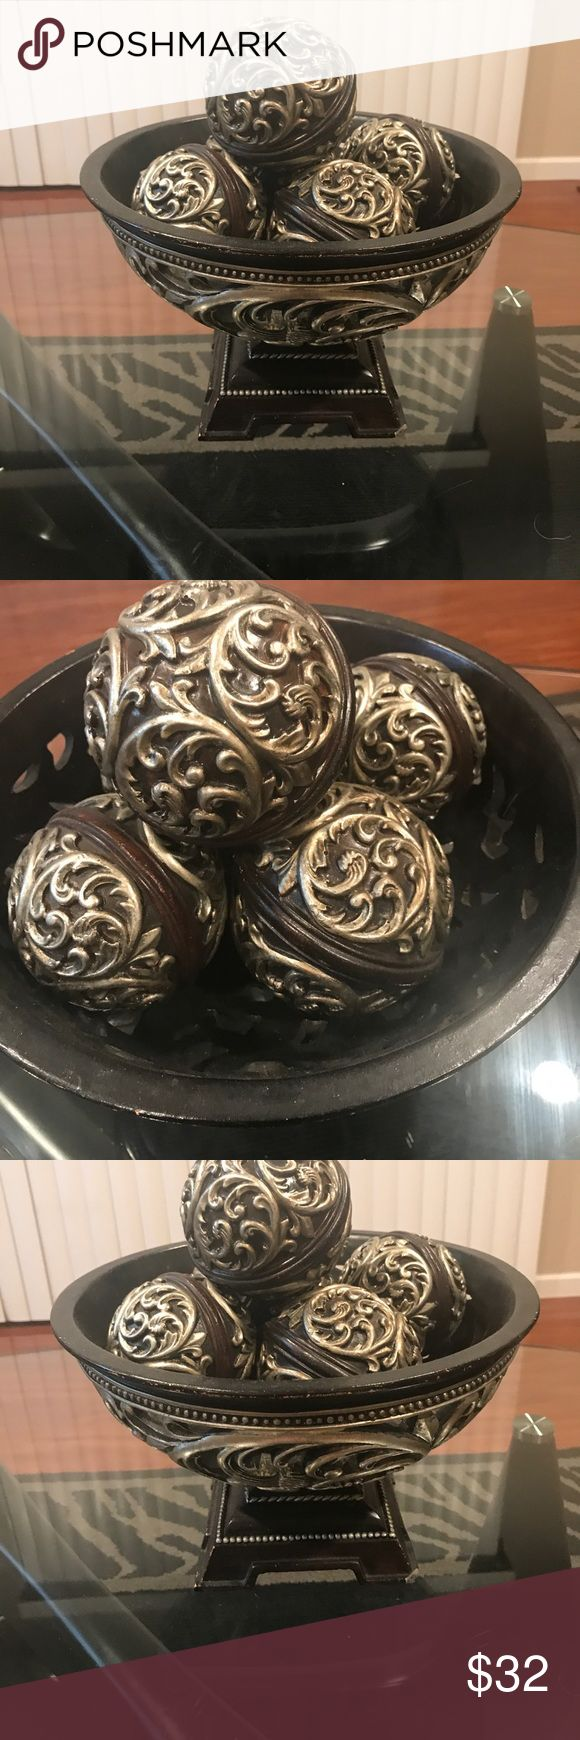 """Decor bowl and 5 balls Rustic brown and silver ceramic 6"""" tall 8"""" round small nick in corner not noticeable Other"""